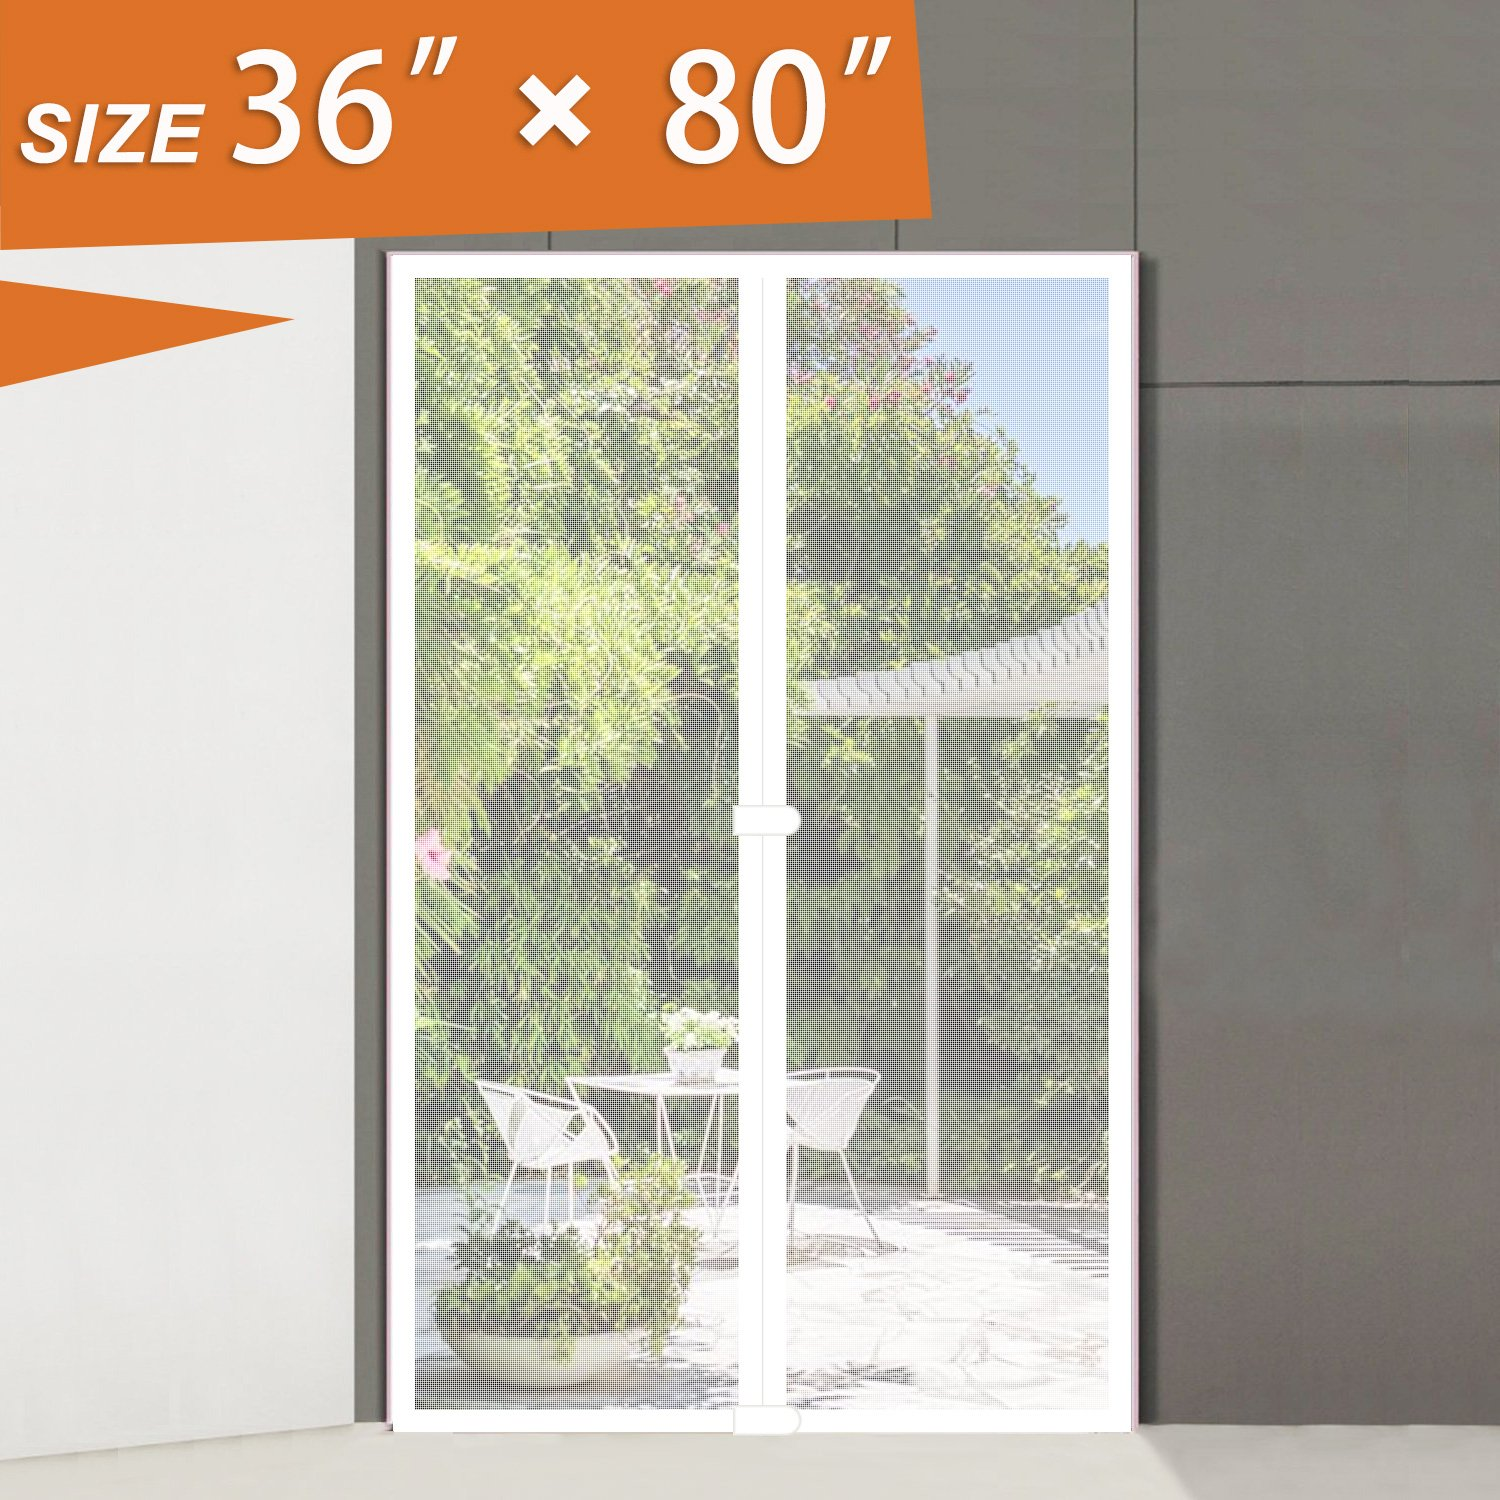 French Door Screen 36 X 80 Mesh Curtain Fly Screens White Fireproof